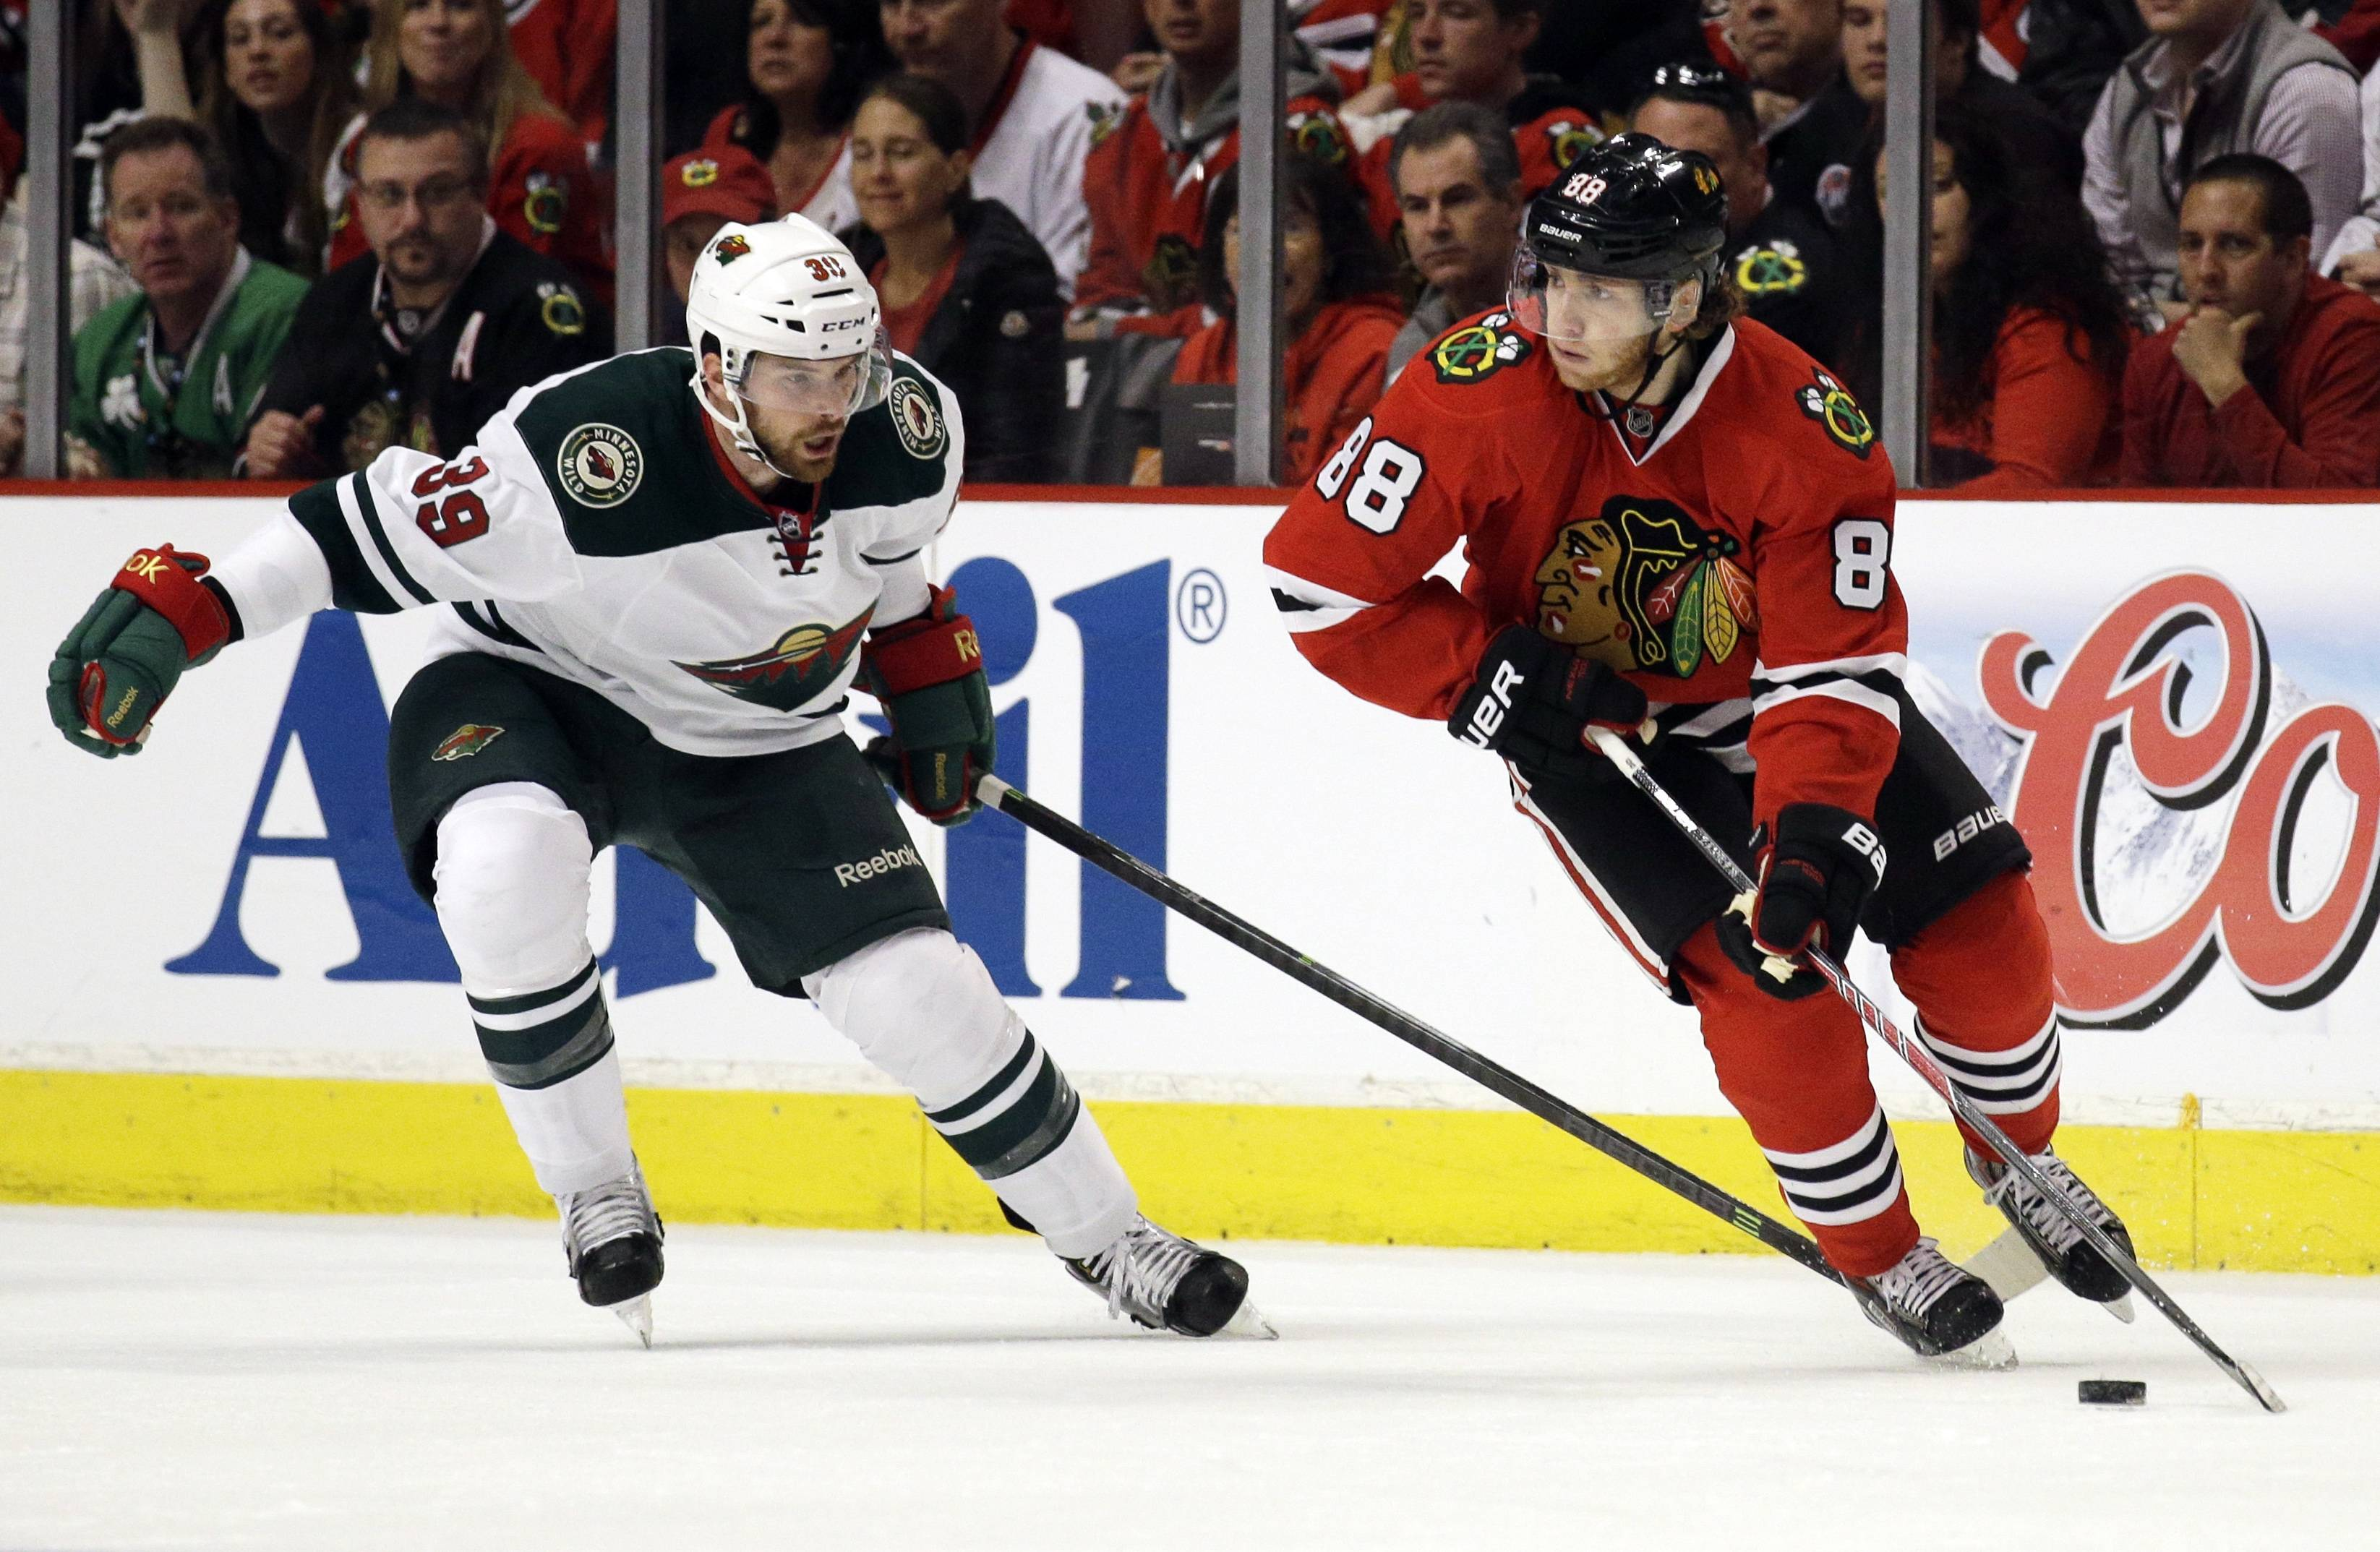 Chicago Blackhawks' Patrick Kane (88), right, controls the puck as he looks to a pass against Minnesota Wild's Nate Prosser (39) during the first period.